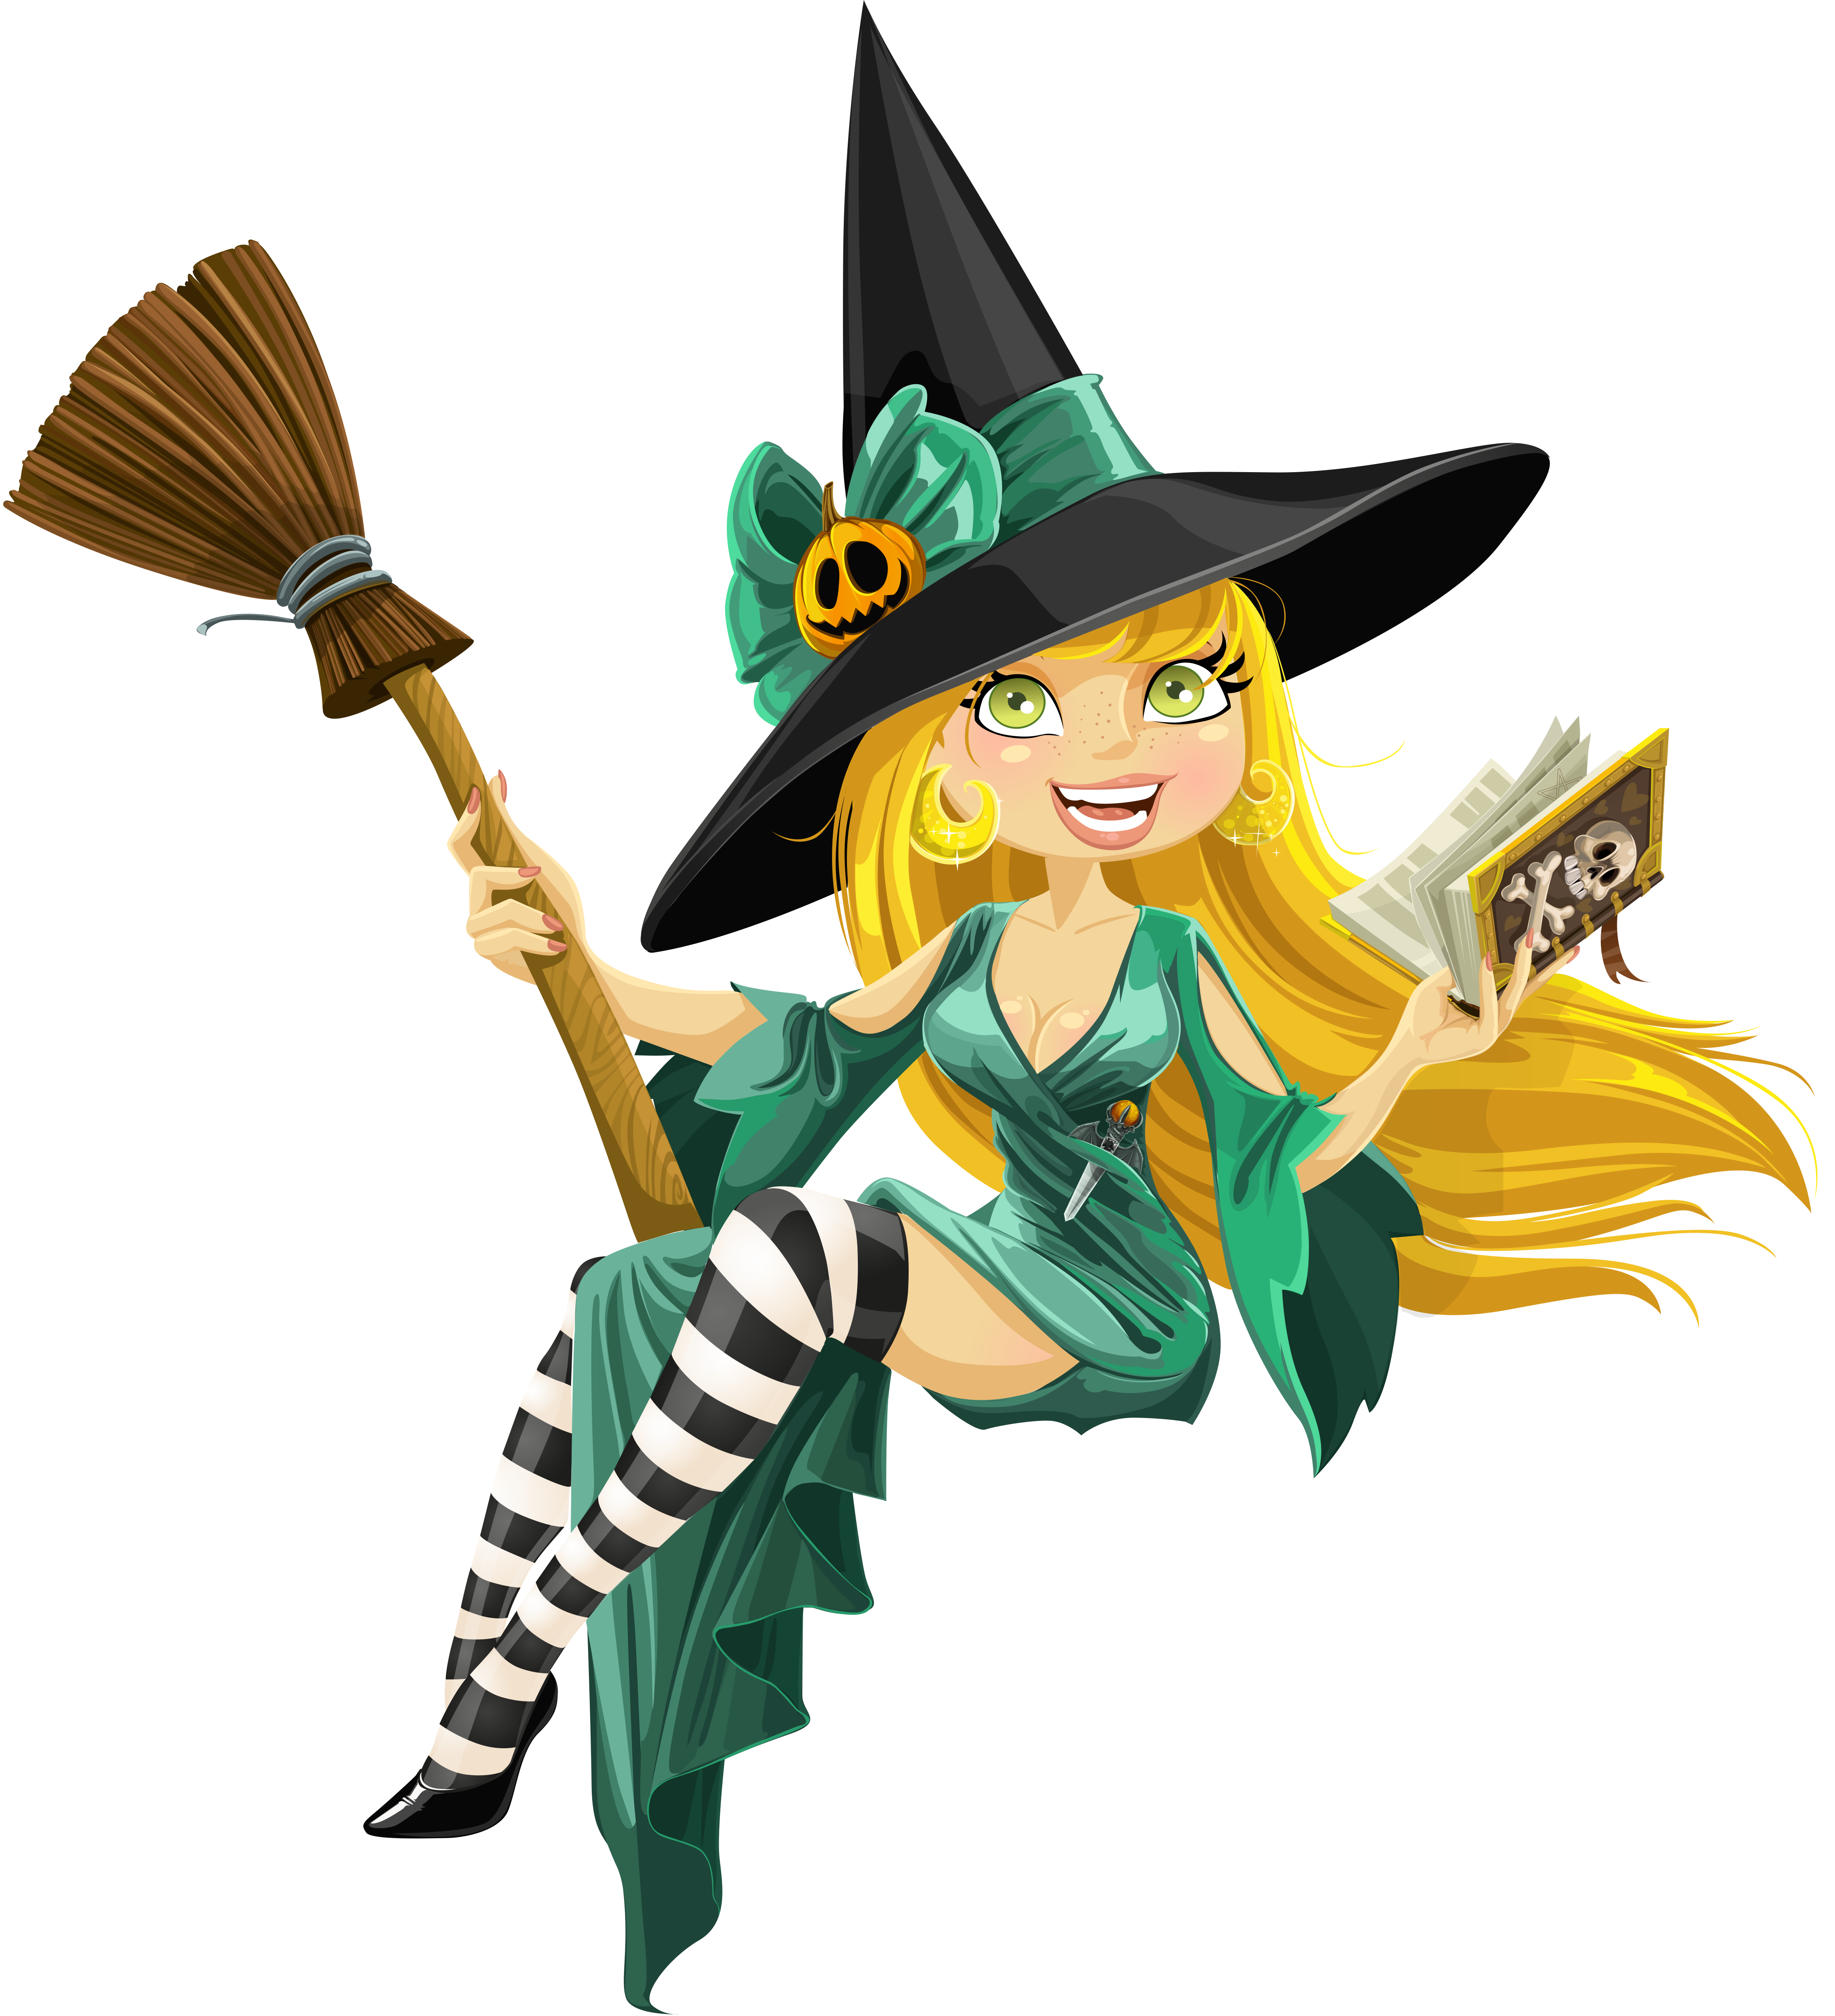 Clipart halloween male witch picture free library 0_13b8a2_d1e67227_orig (4552×5000) | HALLOWEEN | Pinterest picture free library